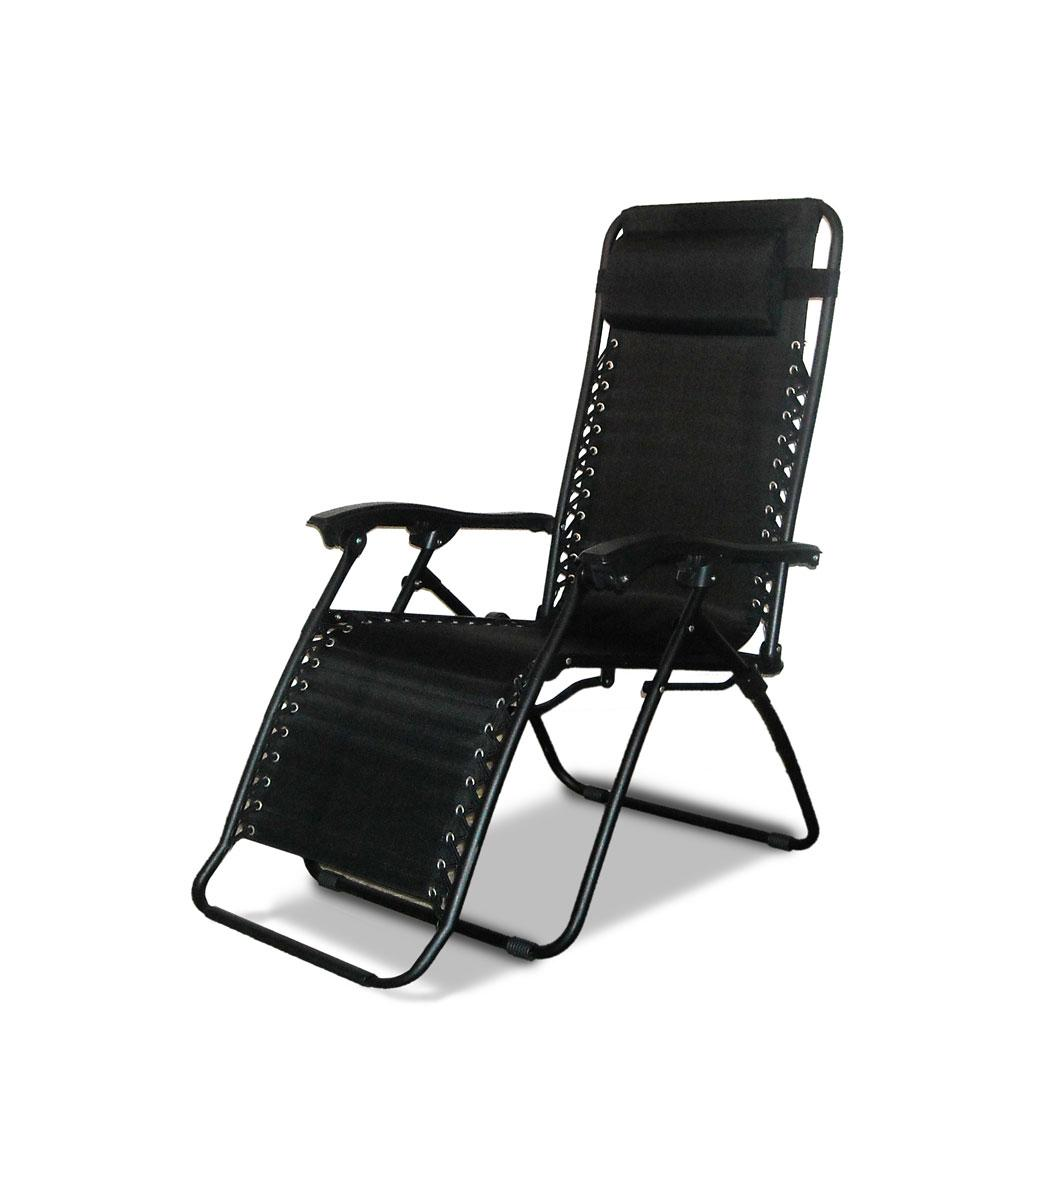 Awesome Caravan Canopy Black Zero Gravity Chair